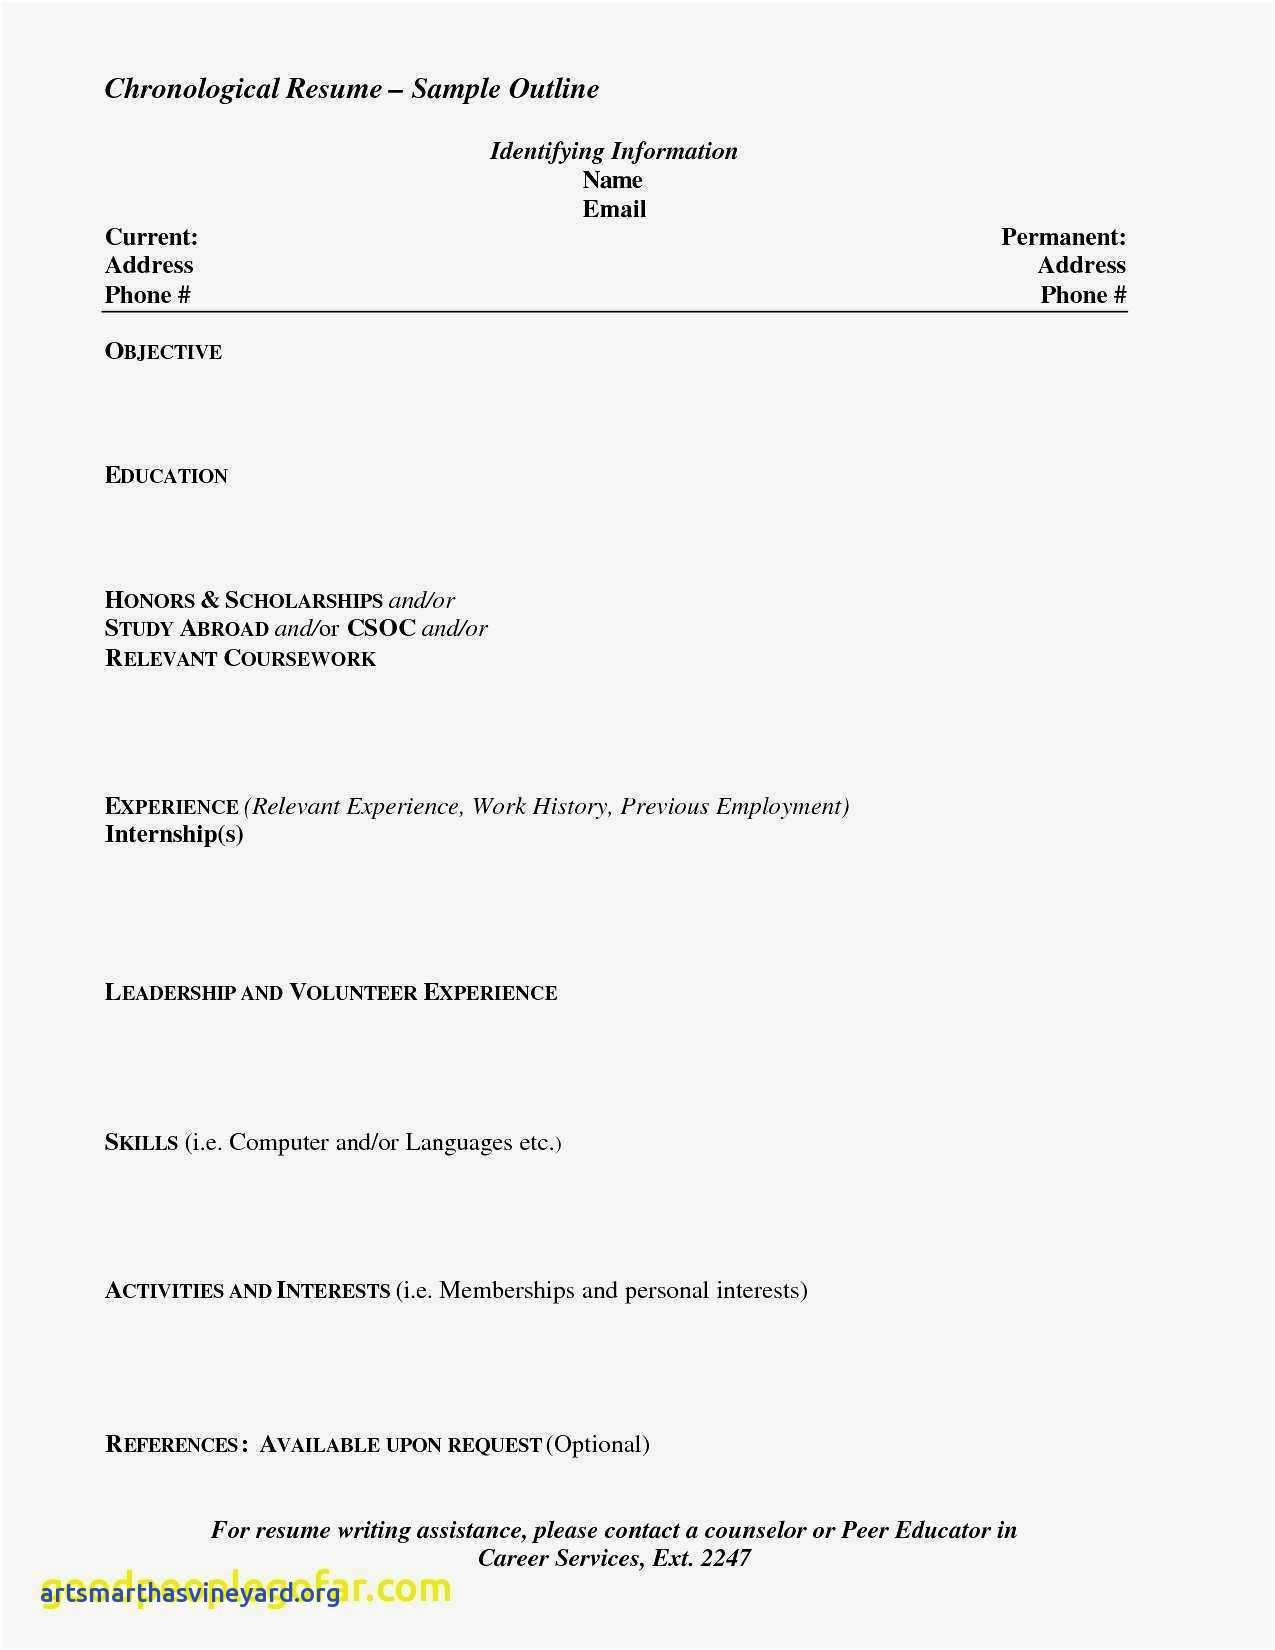 Resume Template for Scholarship - Resume Templates High School Students No Experience Simple Unique